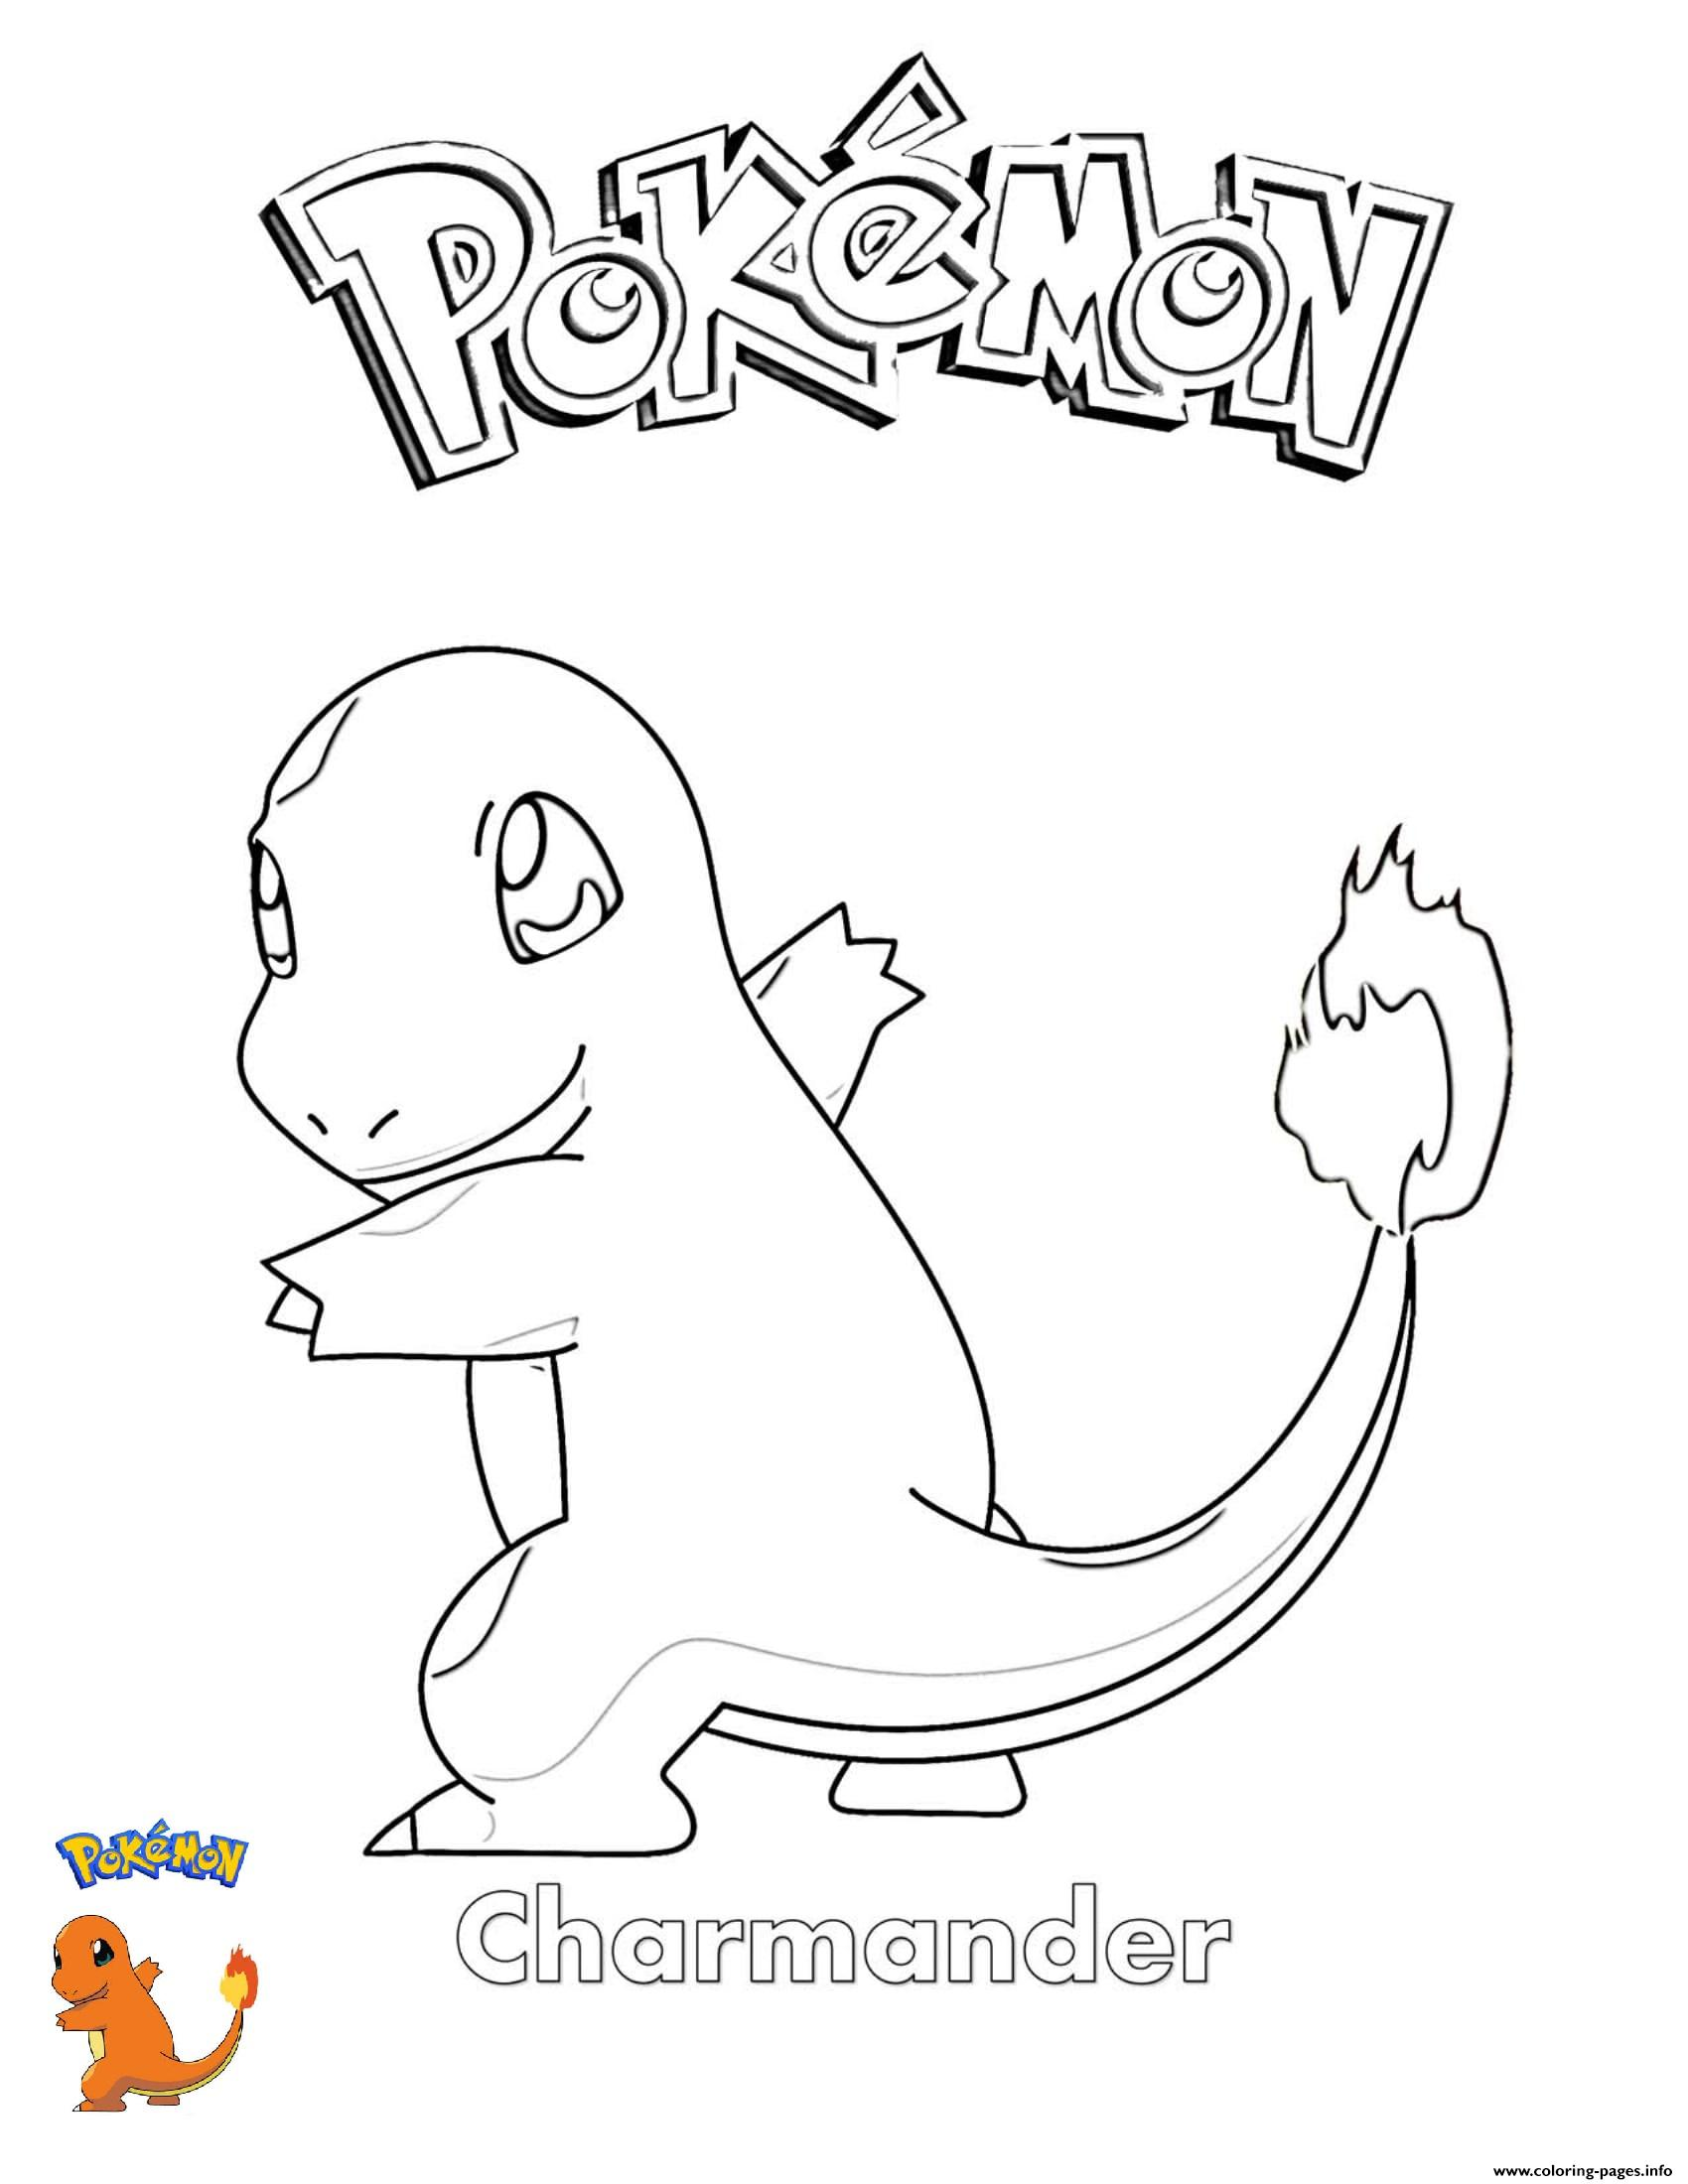 Charmander Pokemon Coloring Pages Printable